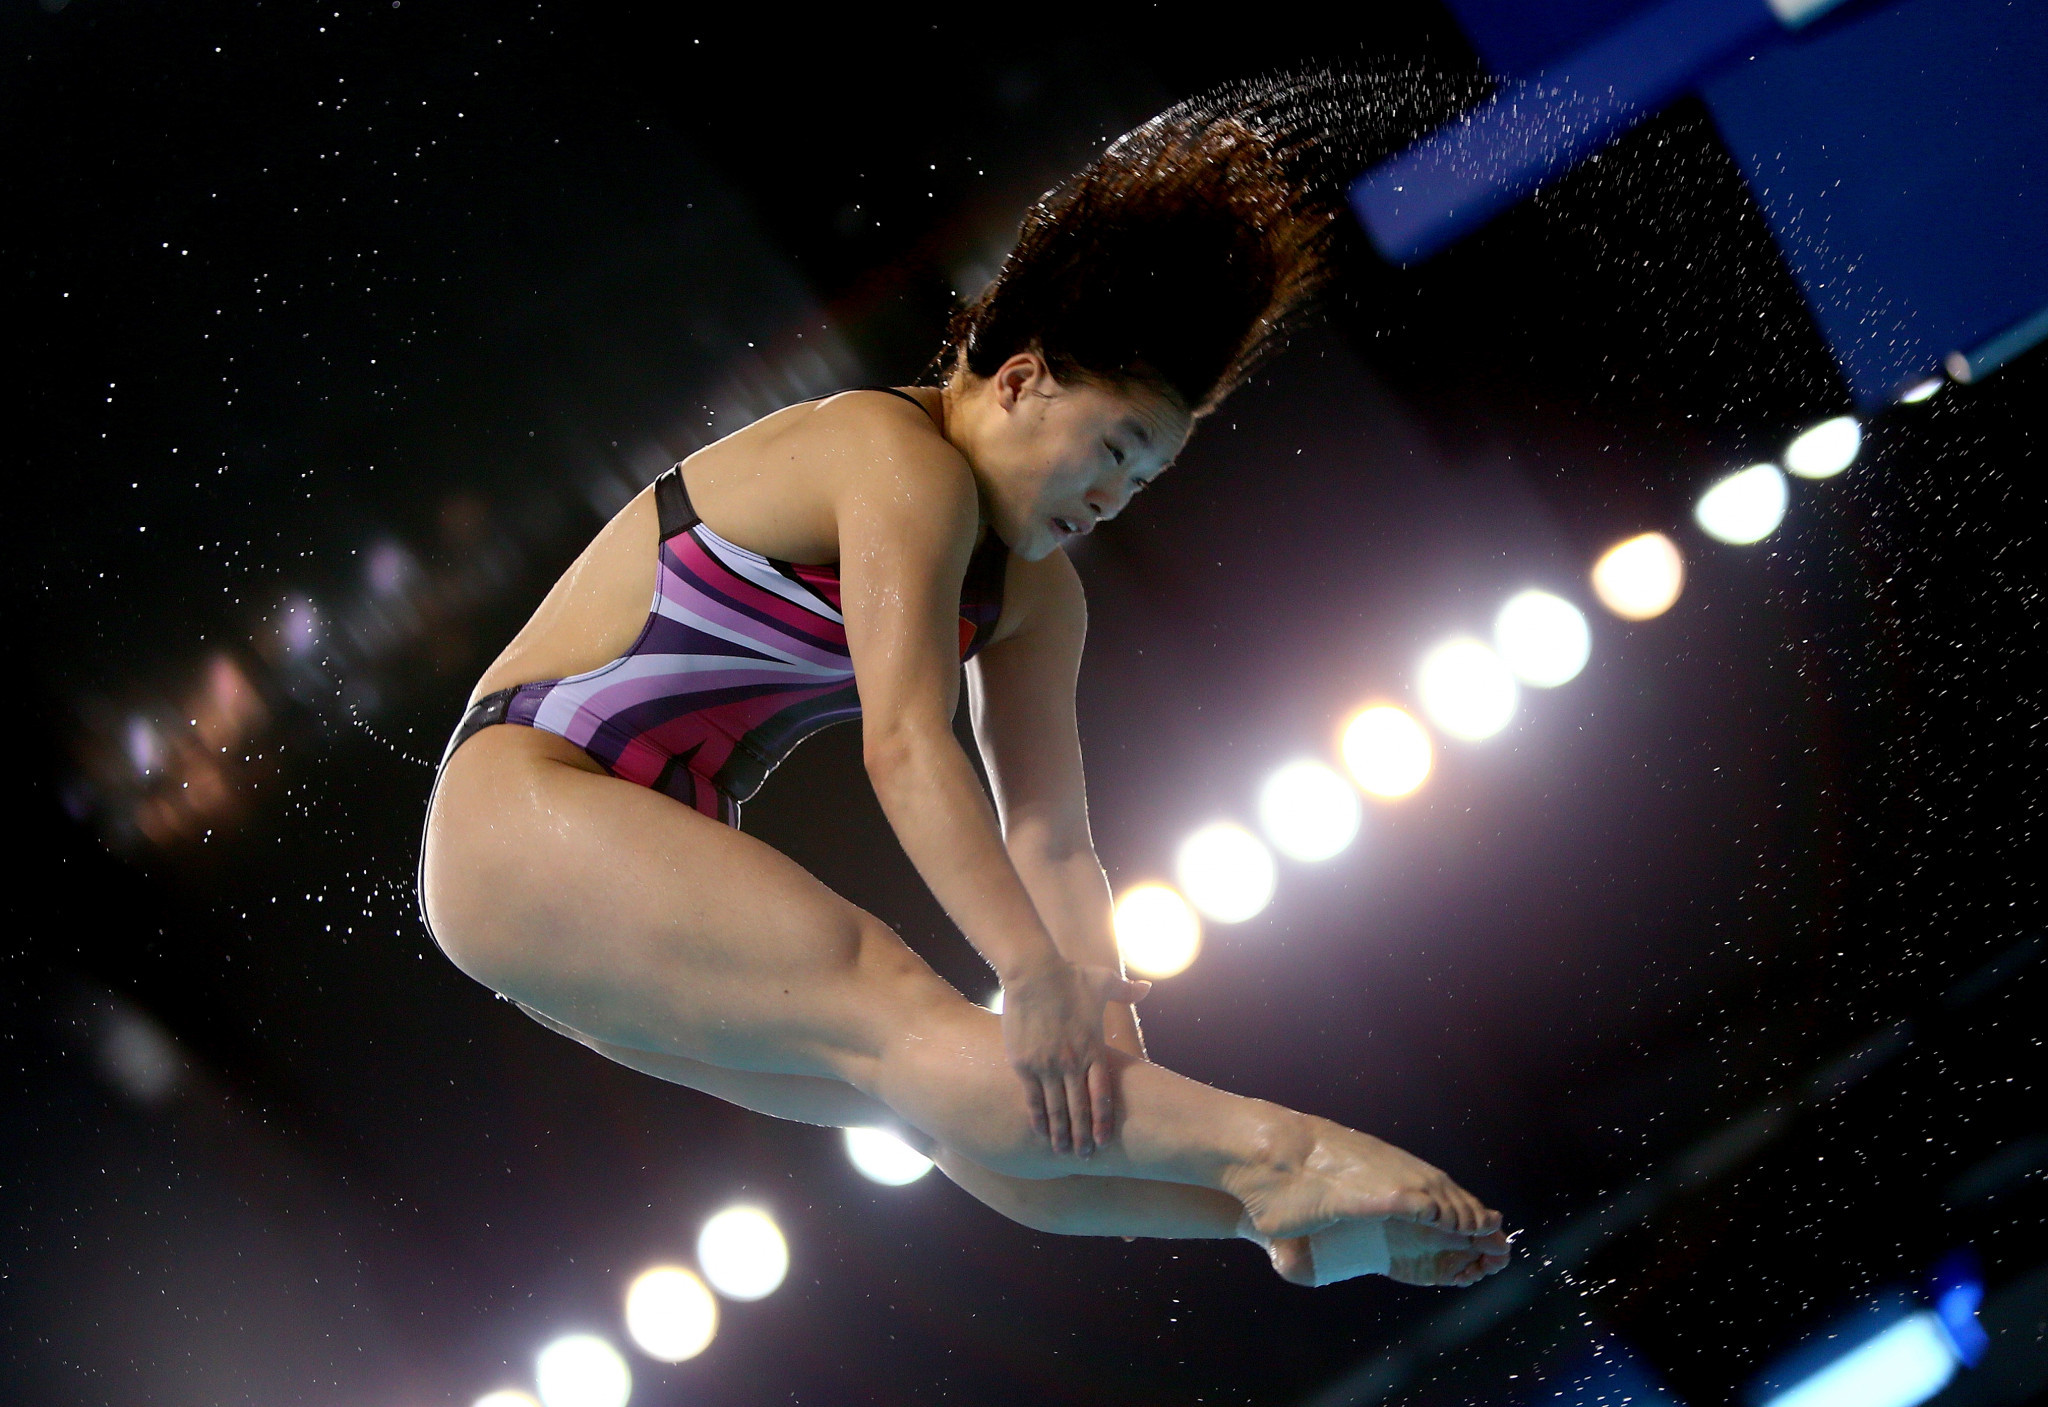 Ying Wei won the women's 3m springboard competition at the FIS Diving Grand Prix in Rostock ©Getty Images